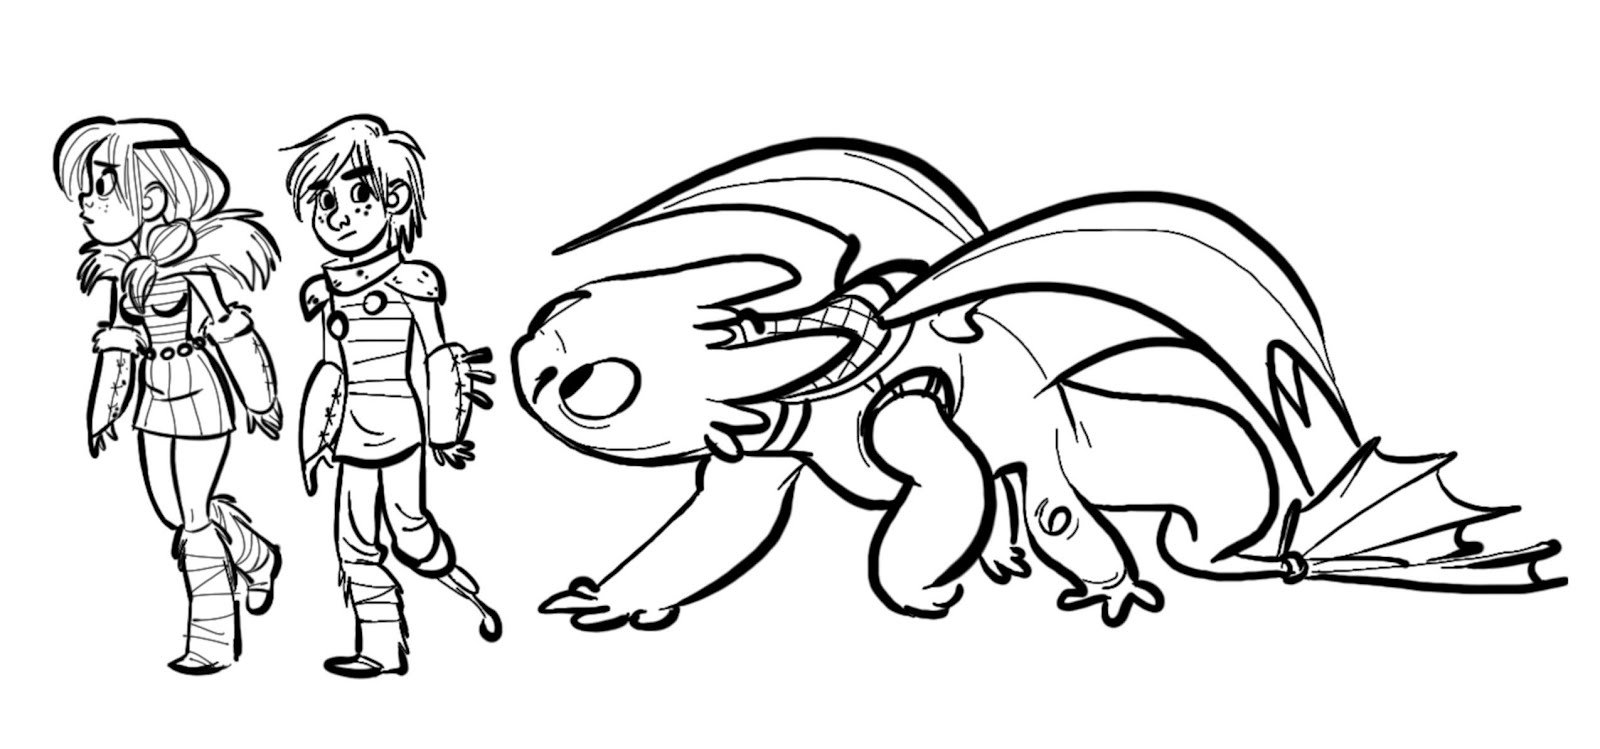 dragon 2 coloring pages - photo#14